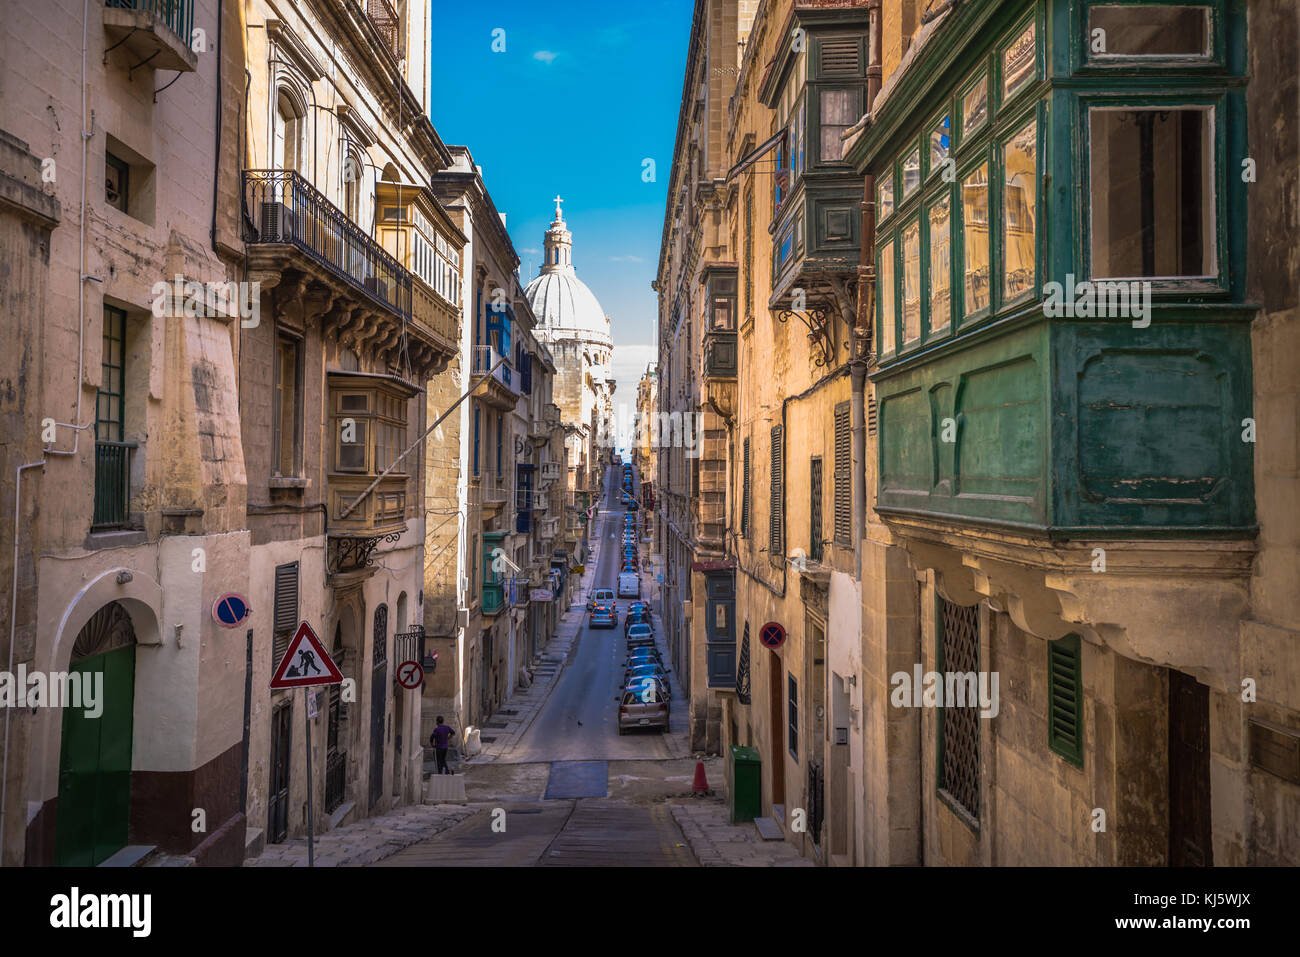 Street of Valletta with traditional balconies, Malta - Stock Image